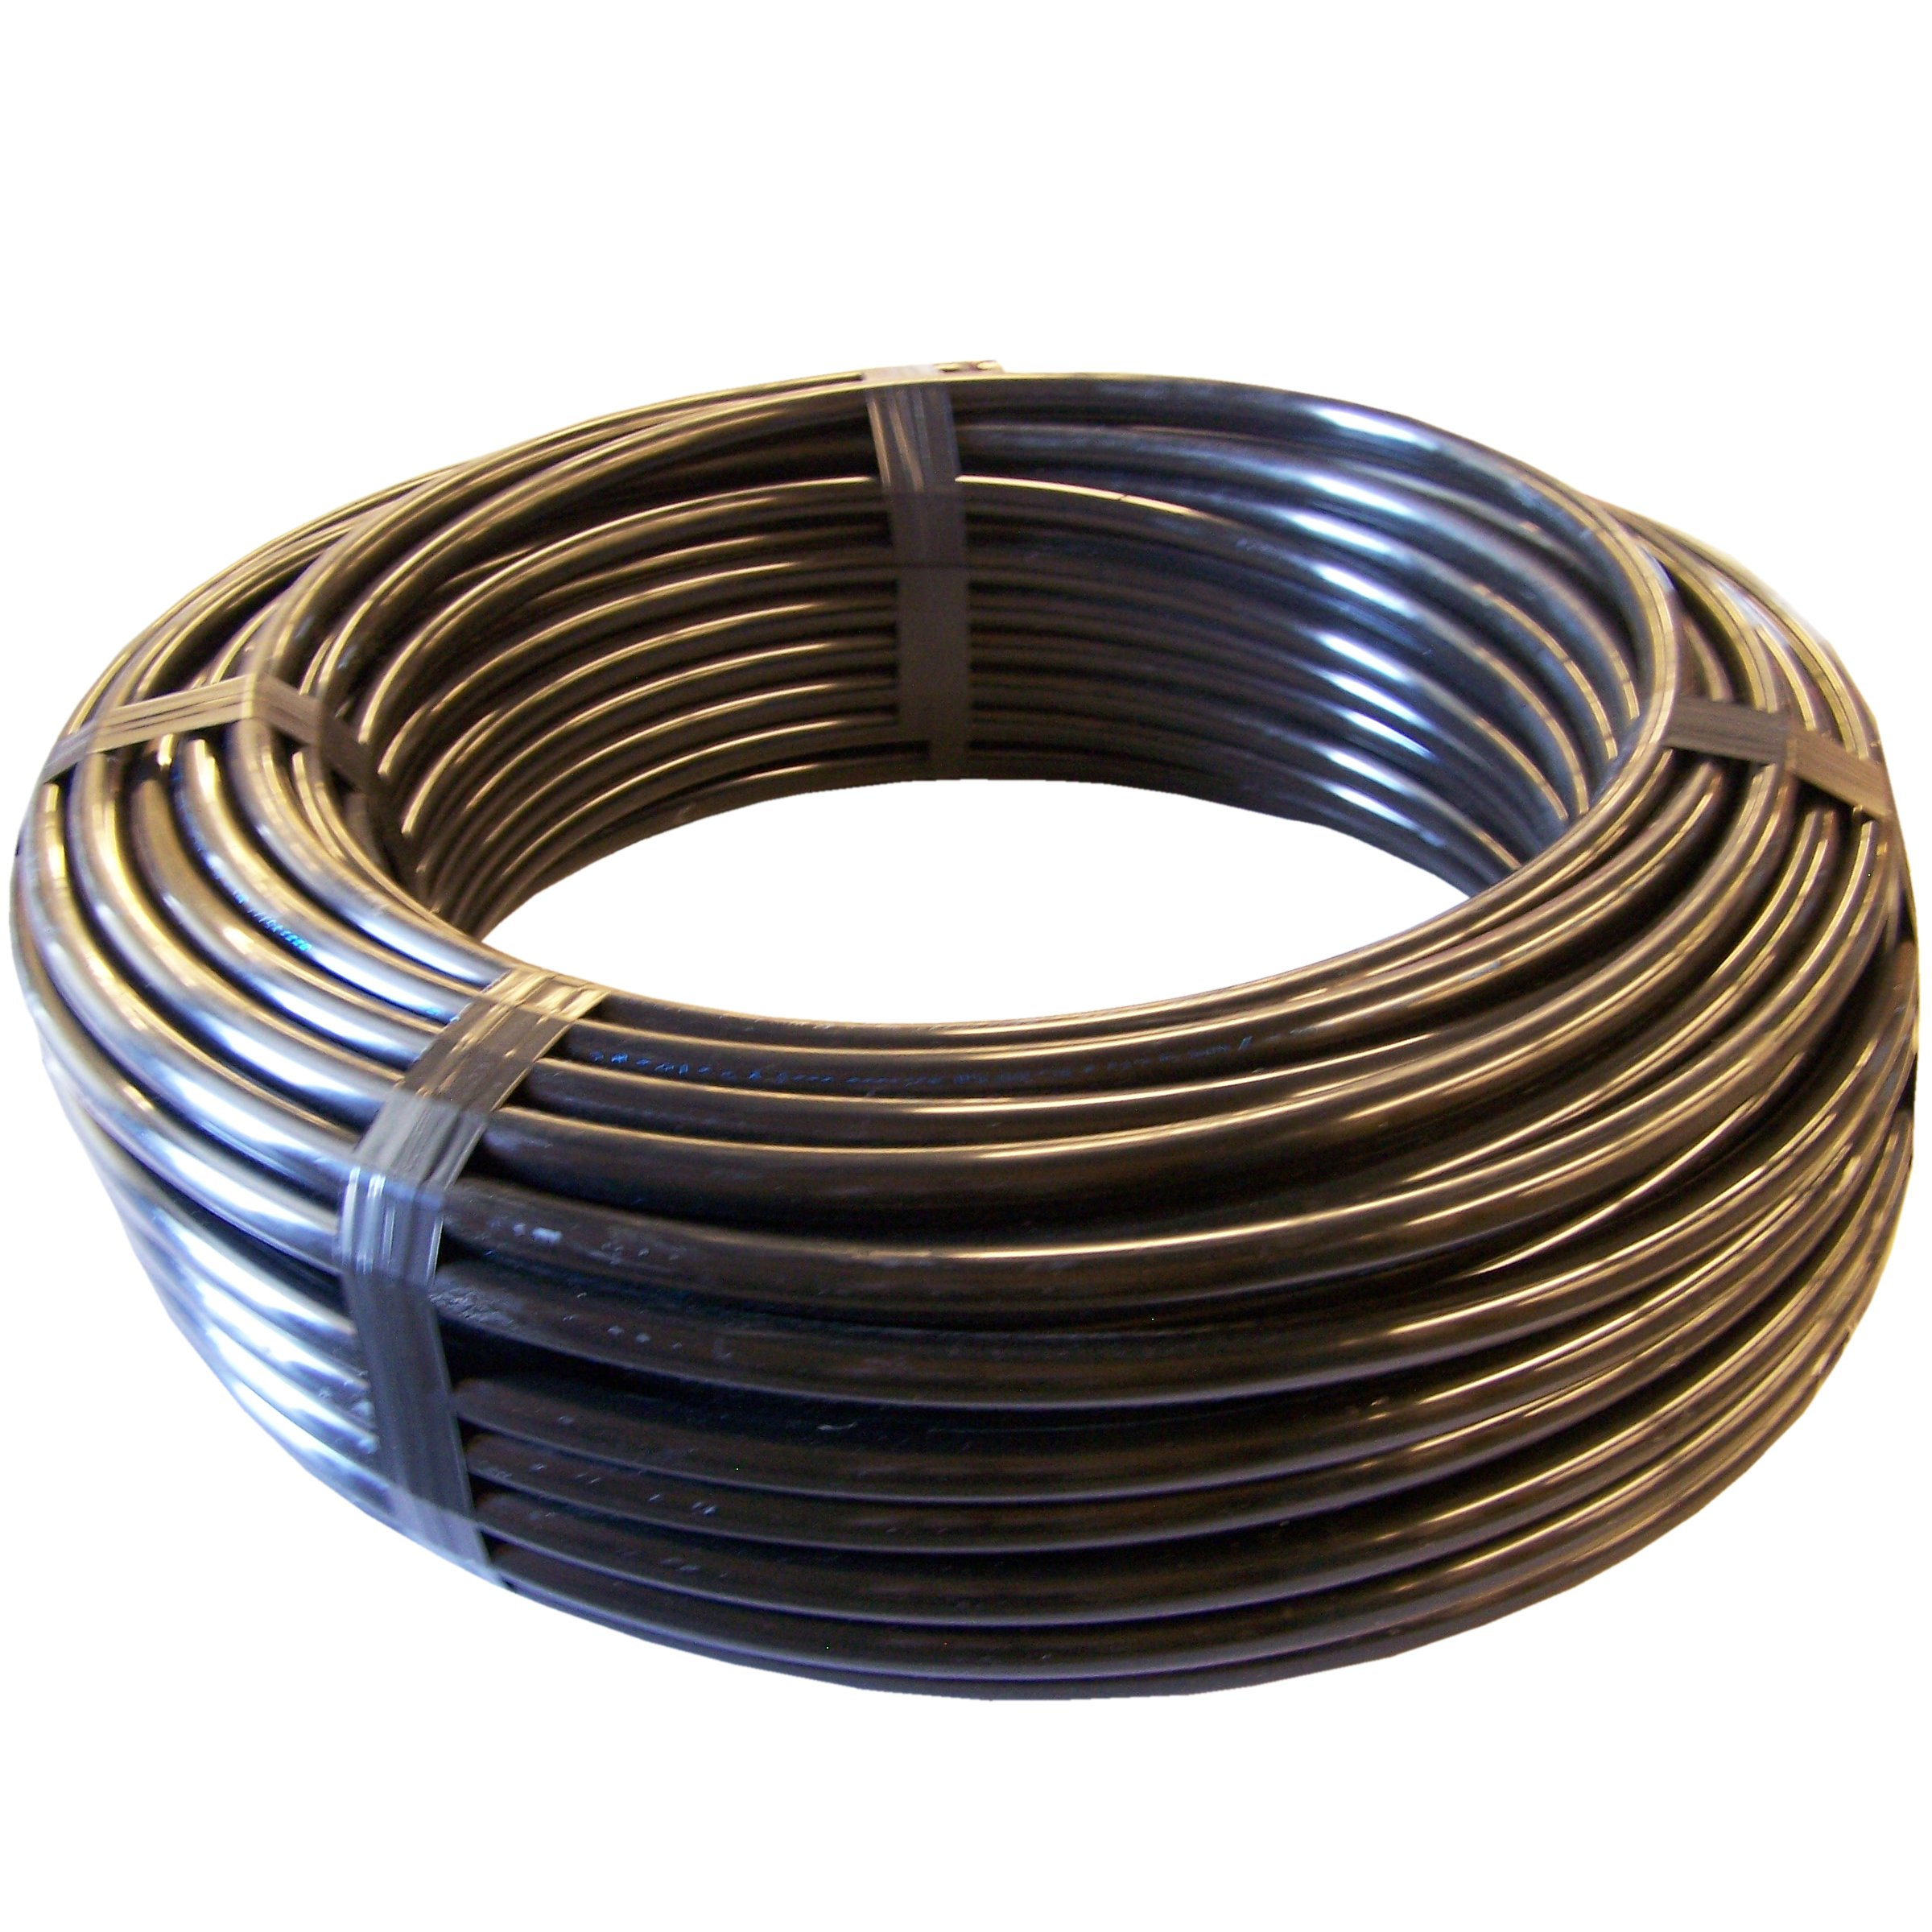 Genova Products 910072 3/4-Inch x 400-Foot 100 PSI Poly Cold Water Plumbing/Irrigation Pipe Tubing Roll by Genova